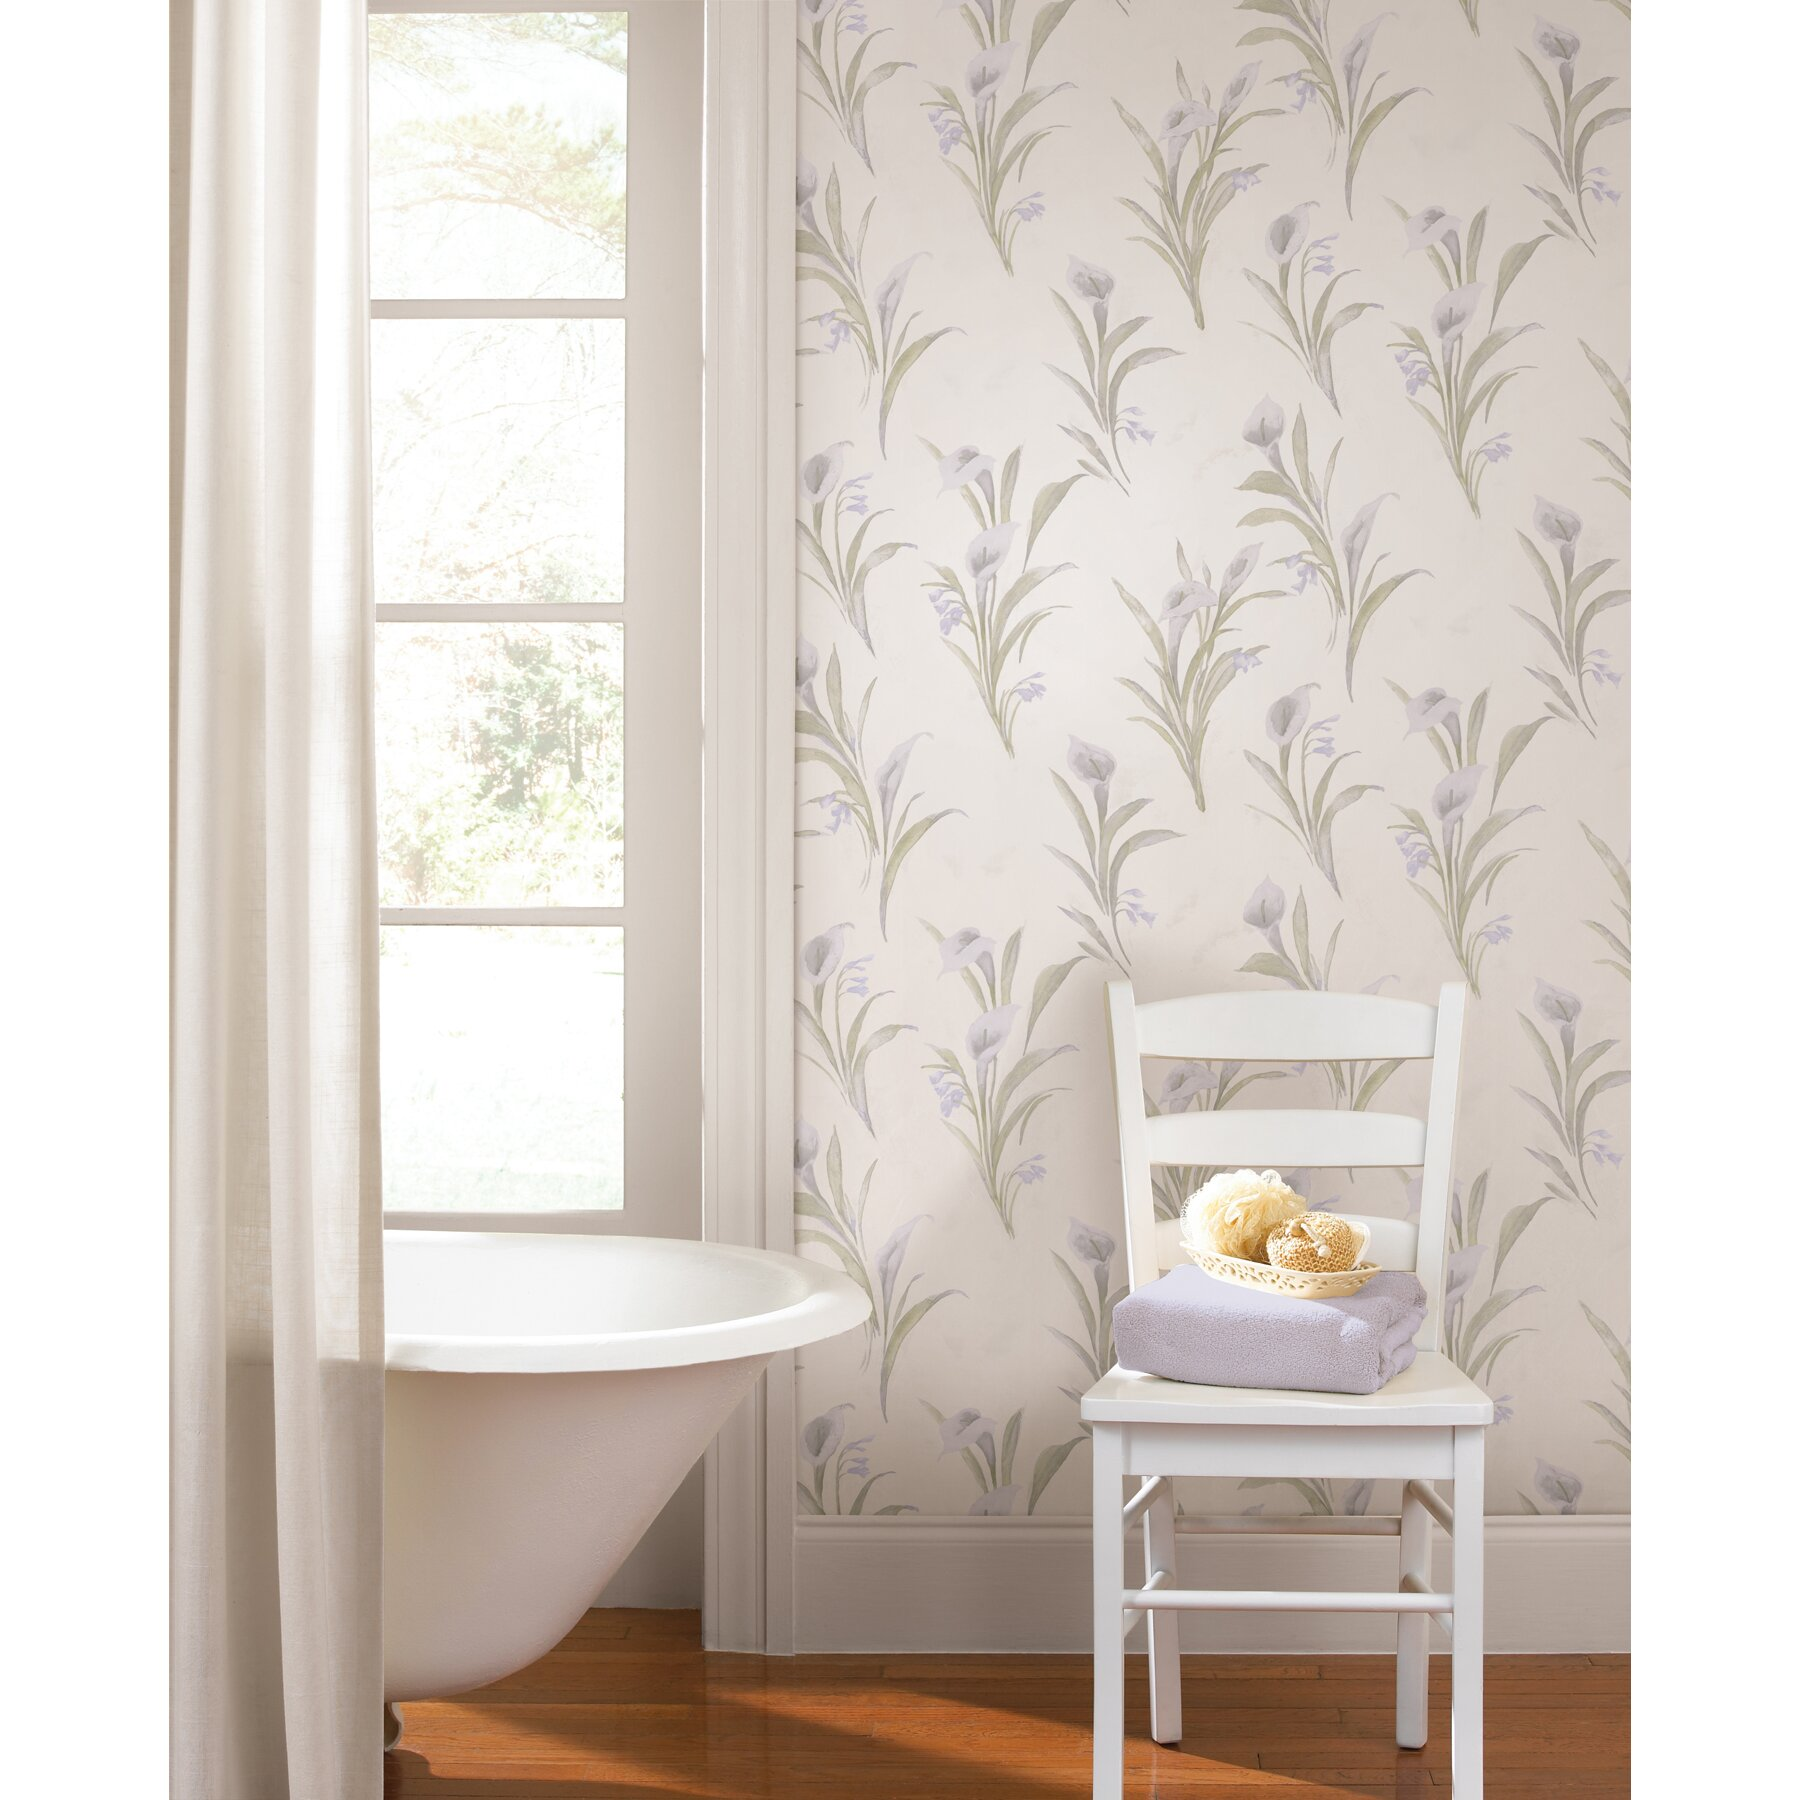 Brewster Home Fashions For Your Bath II Edith Satin Lily ...